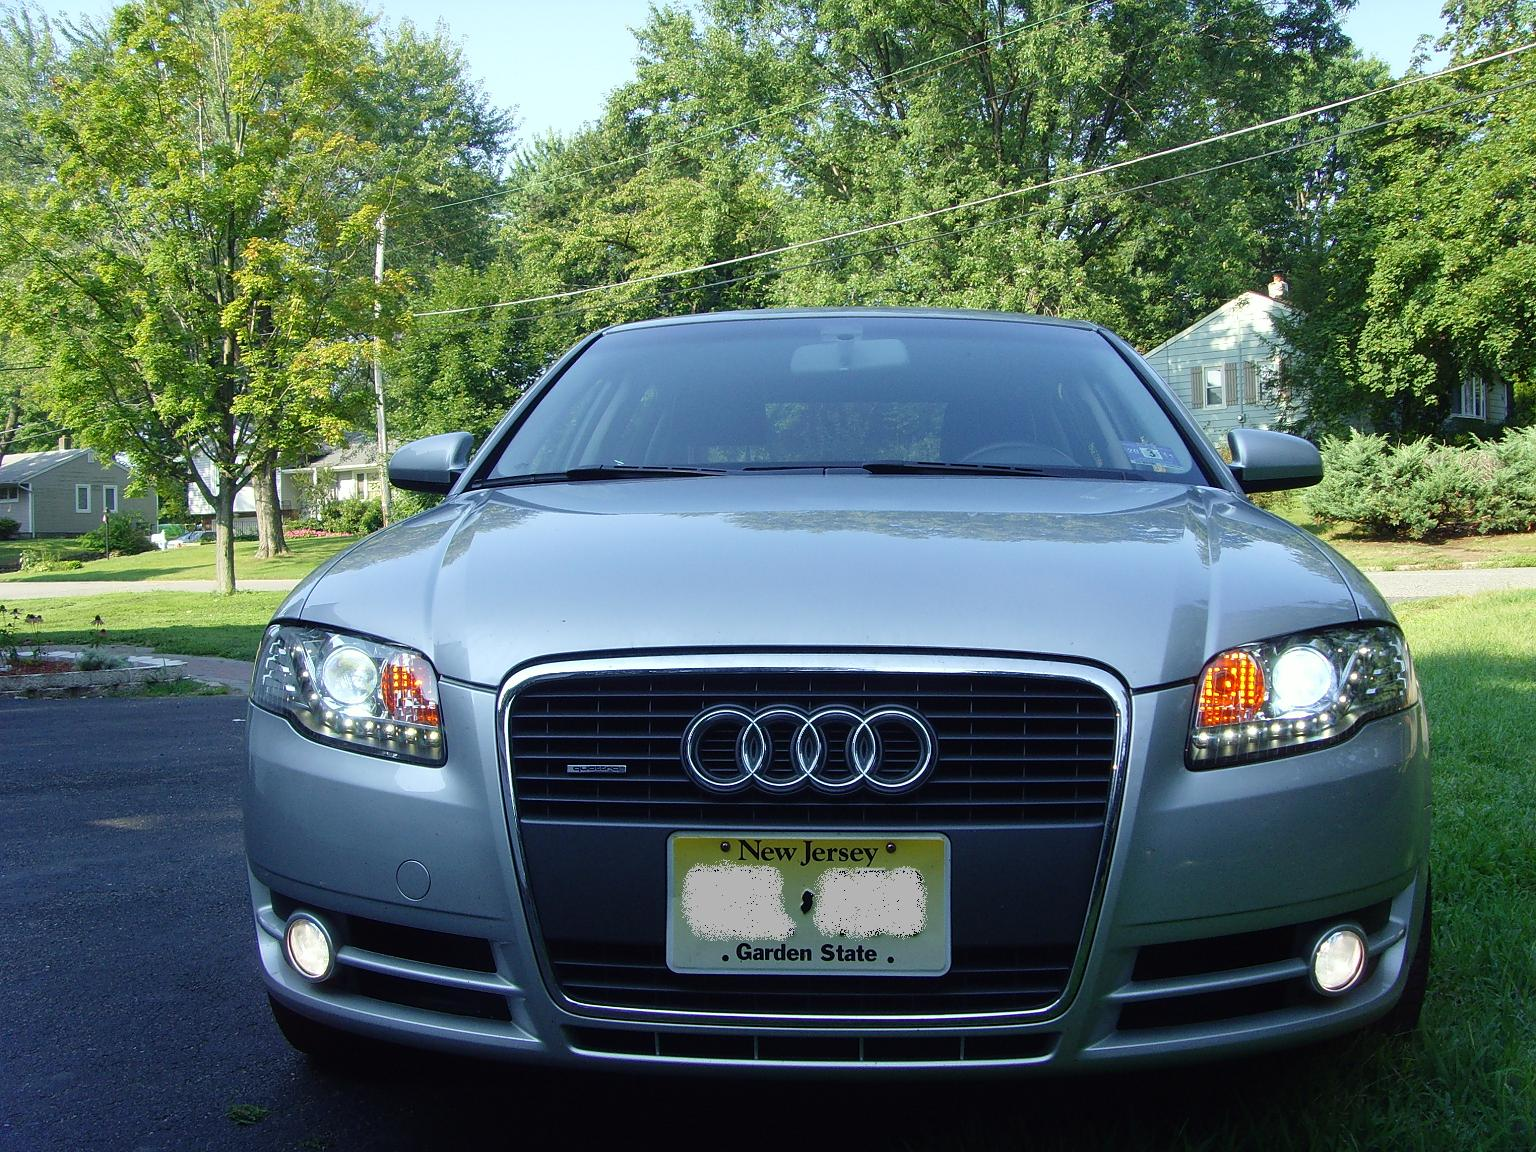 Led Headlights From Ebay - 2006 audi a4 headlights